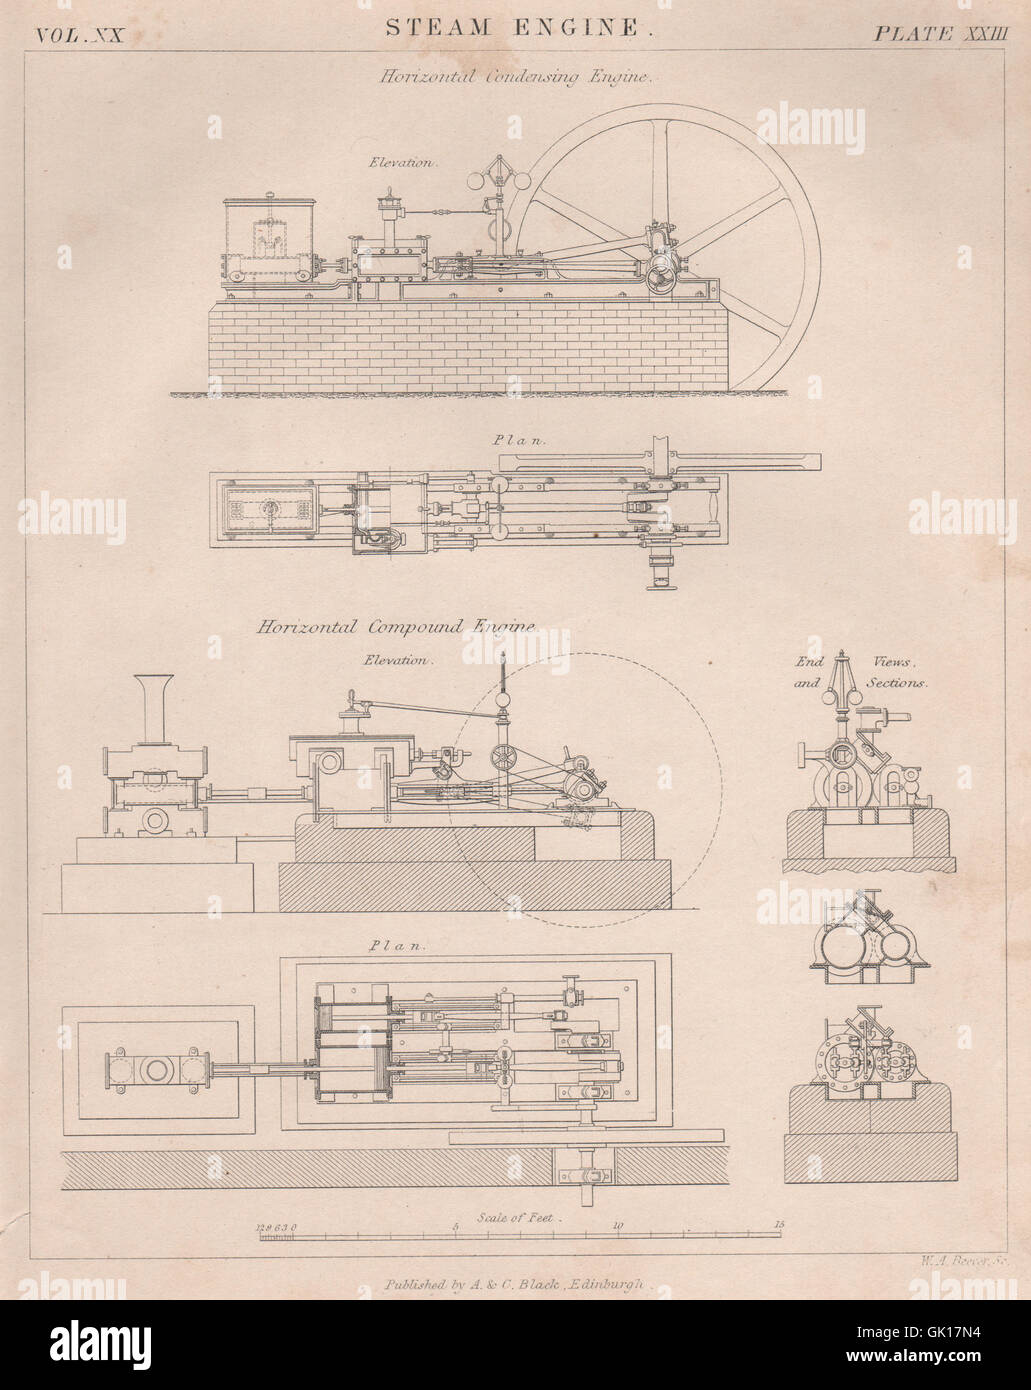 VICTORIAN ENGINEERING DRAWING Horizontal Condensing Compound – Diagram Of Condensing Steam Engine